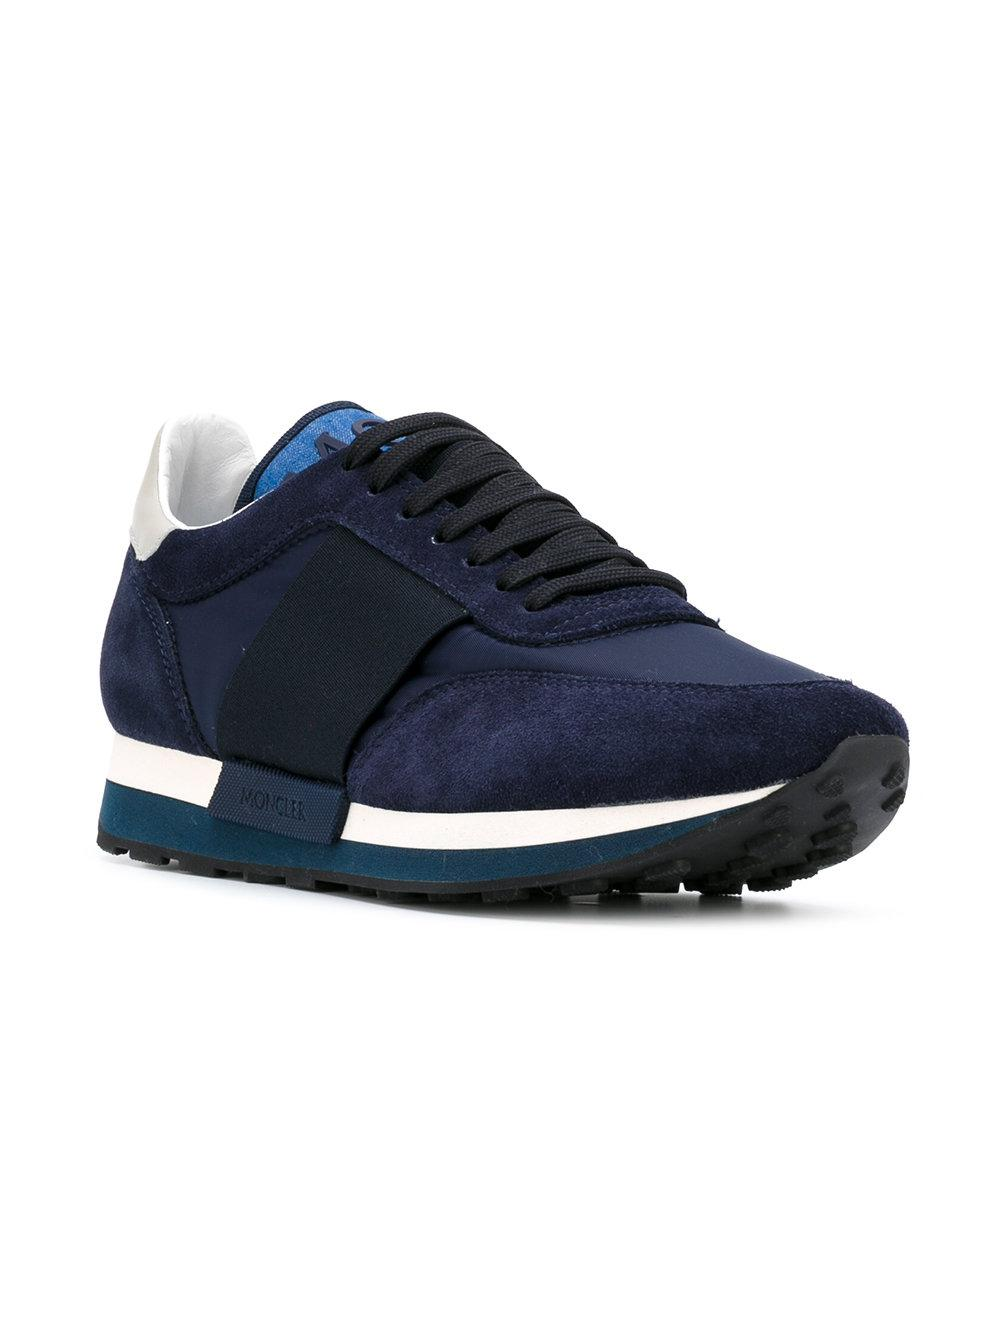 Moncler Leather Horace Sneakers In Blue For Men Lyst